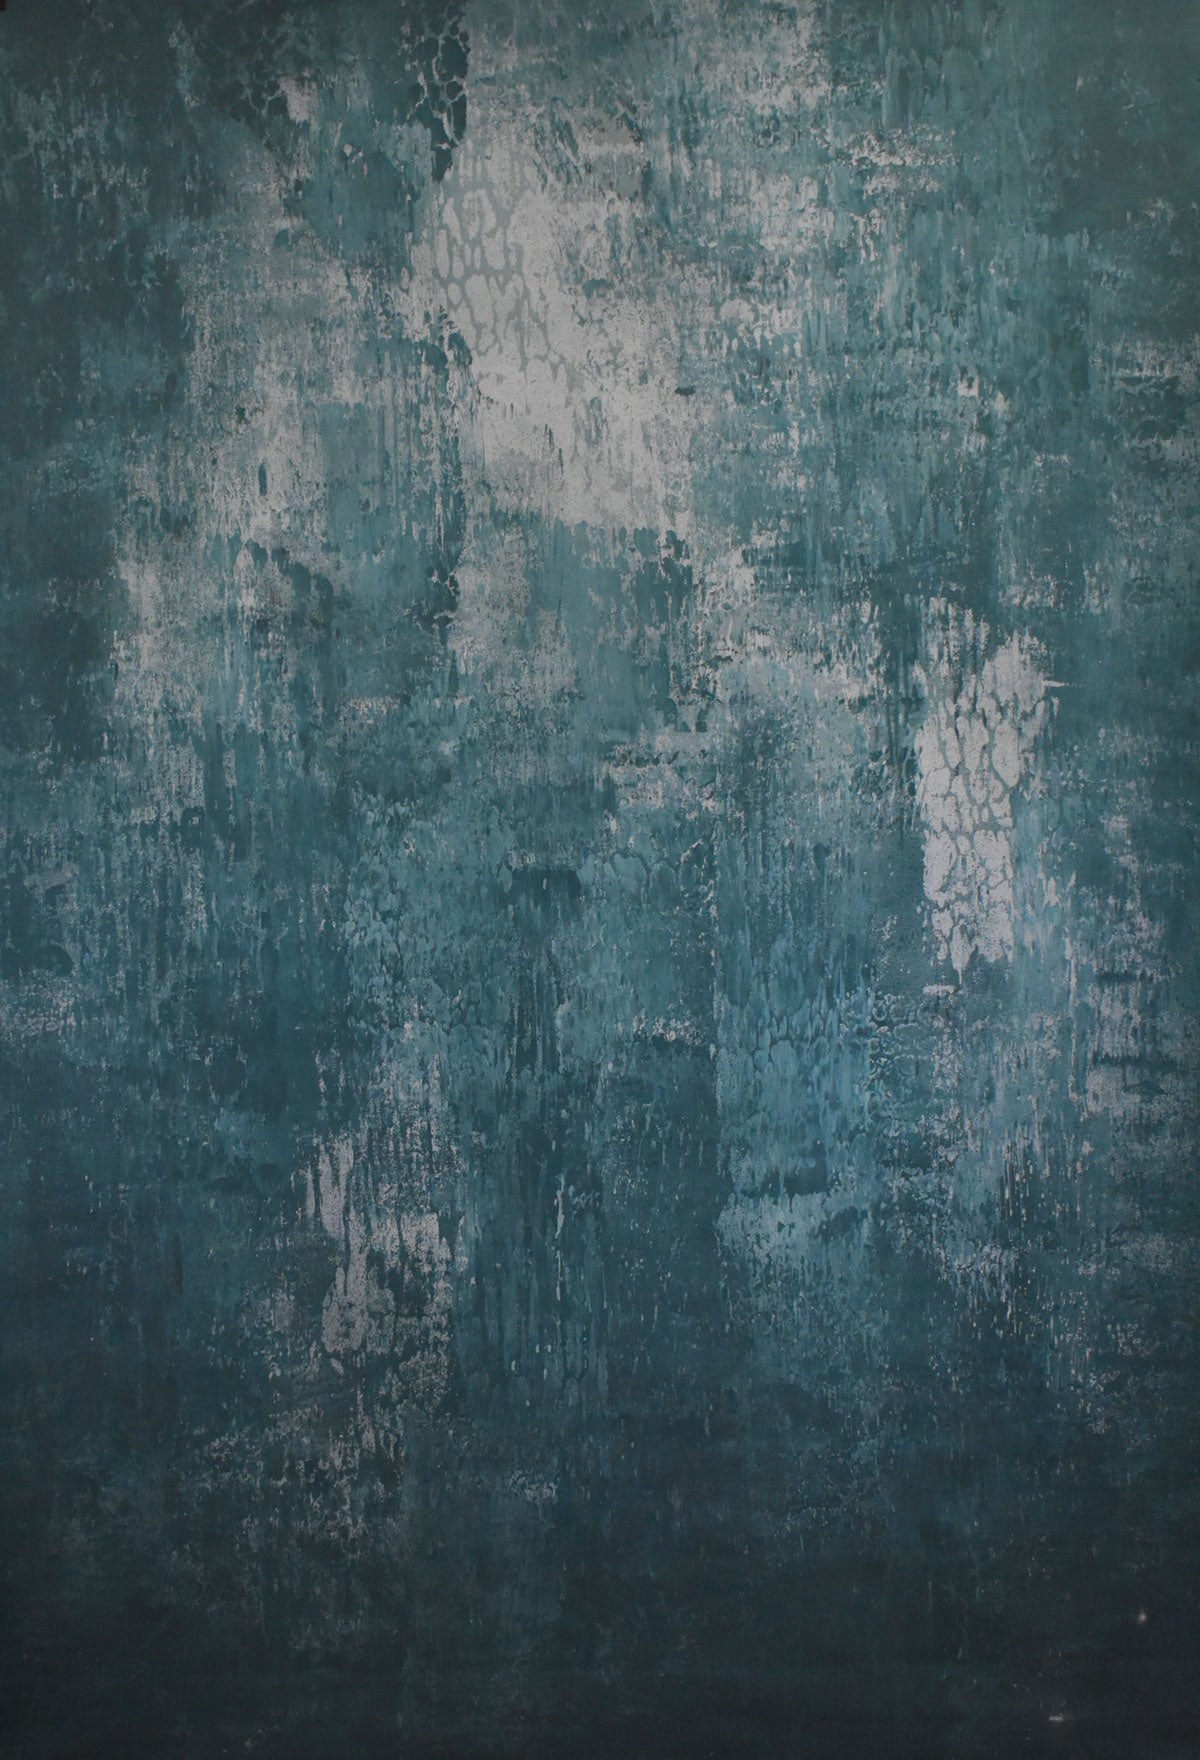 Abstract Teal Grey Spray Textured Hand Painted Canvas # clot2